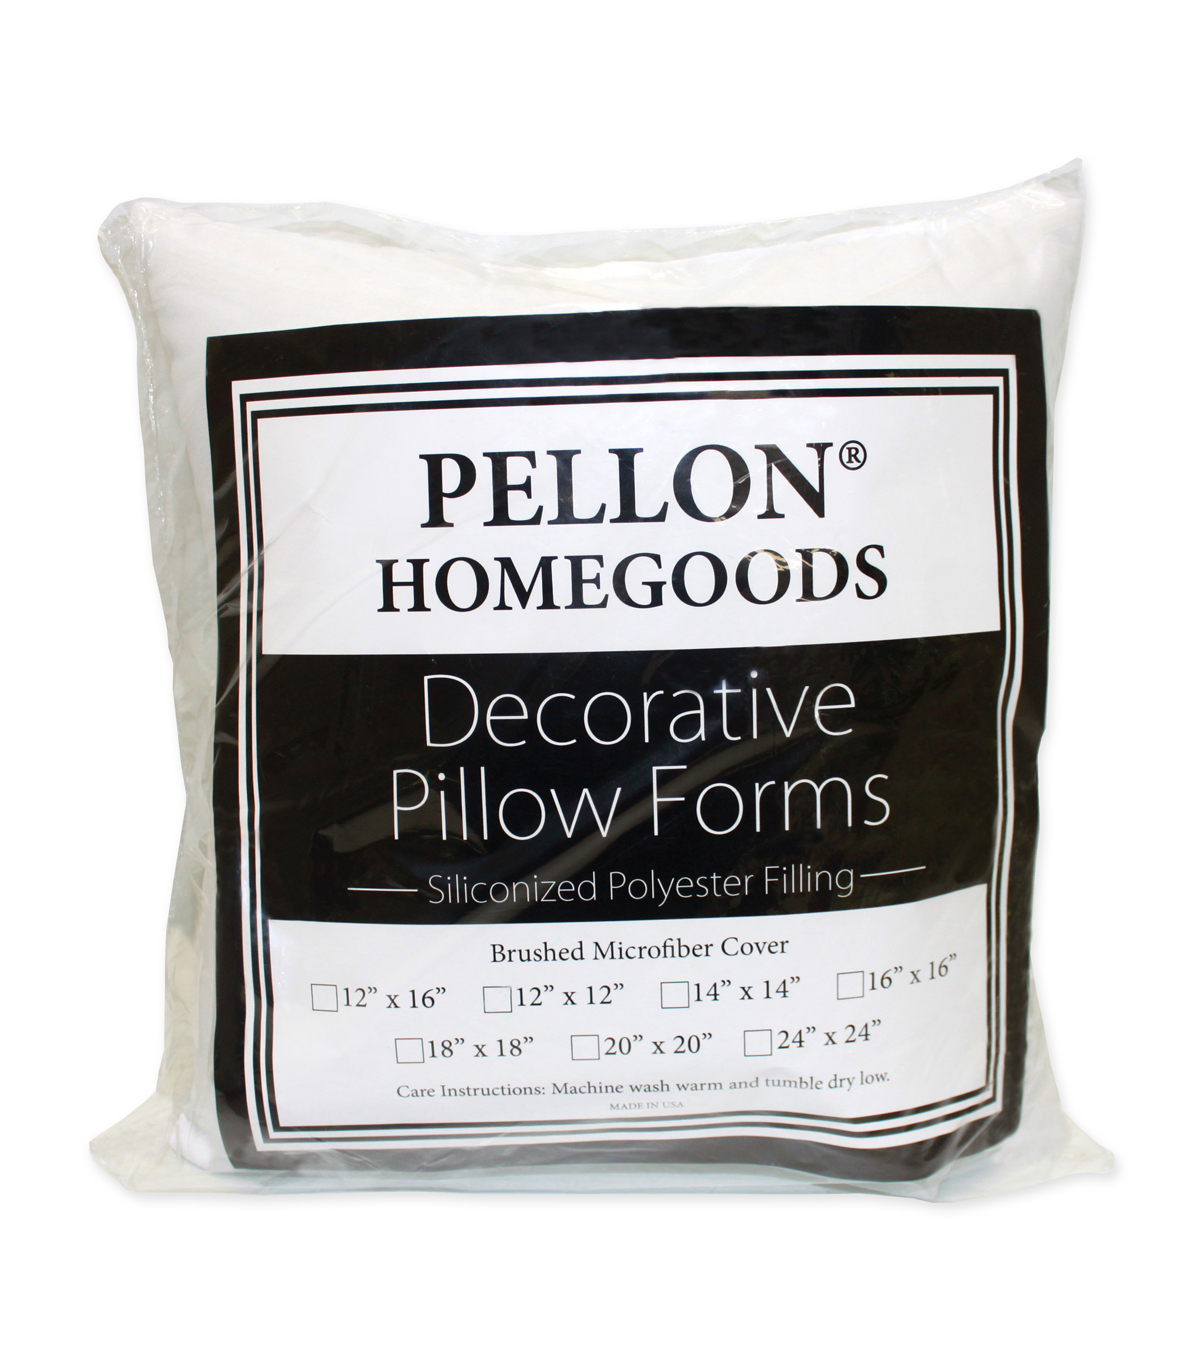 Pellon Decorative 12\u0022 x 12\u0022 Microfiber Pillow Form, 12\u0022 X 12\u0022 Single Pillow